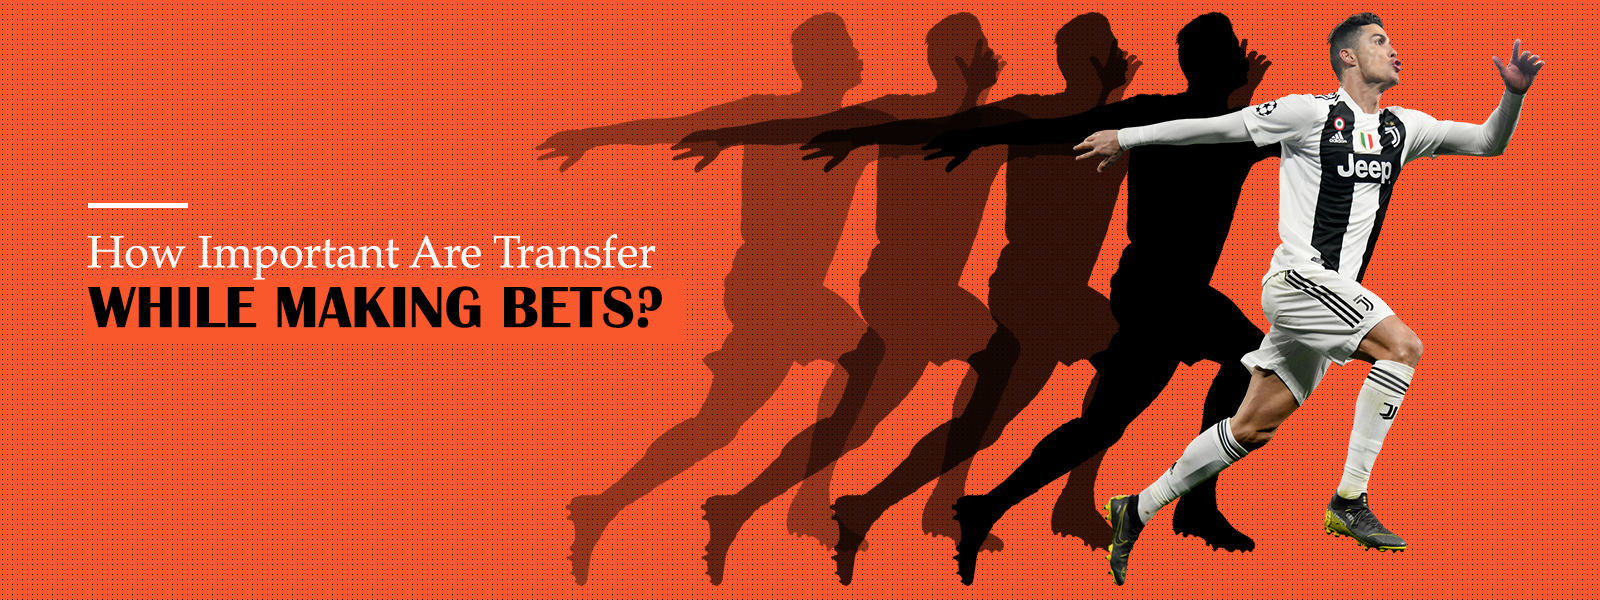 How Important Are Transfer While Making Bets?